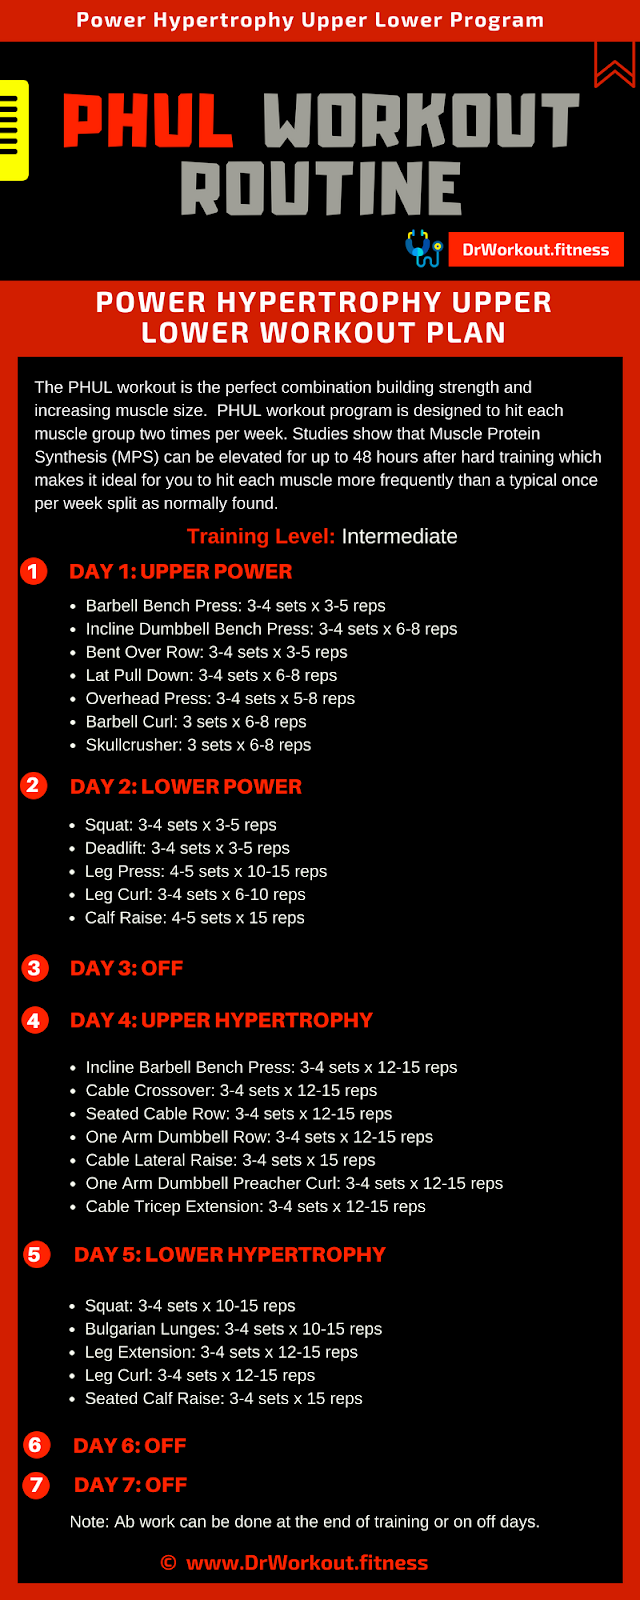 Power Hypertrophy Upper Lower (PHUL) Workout Routine | Dr